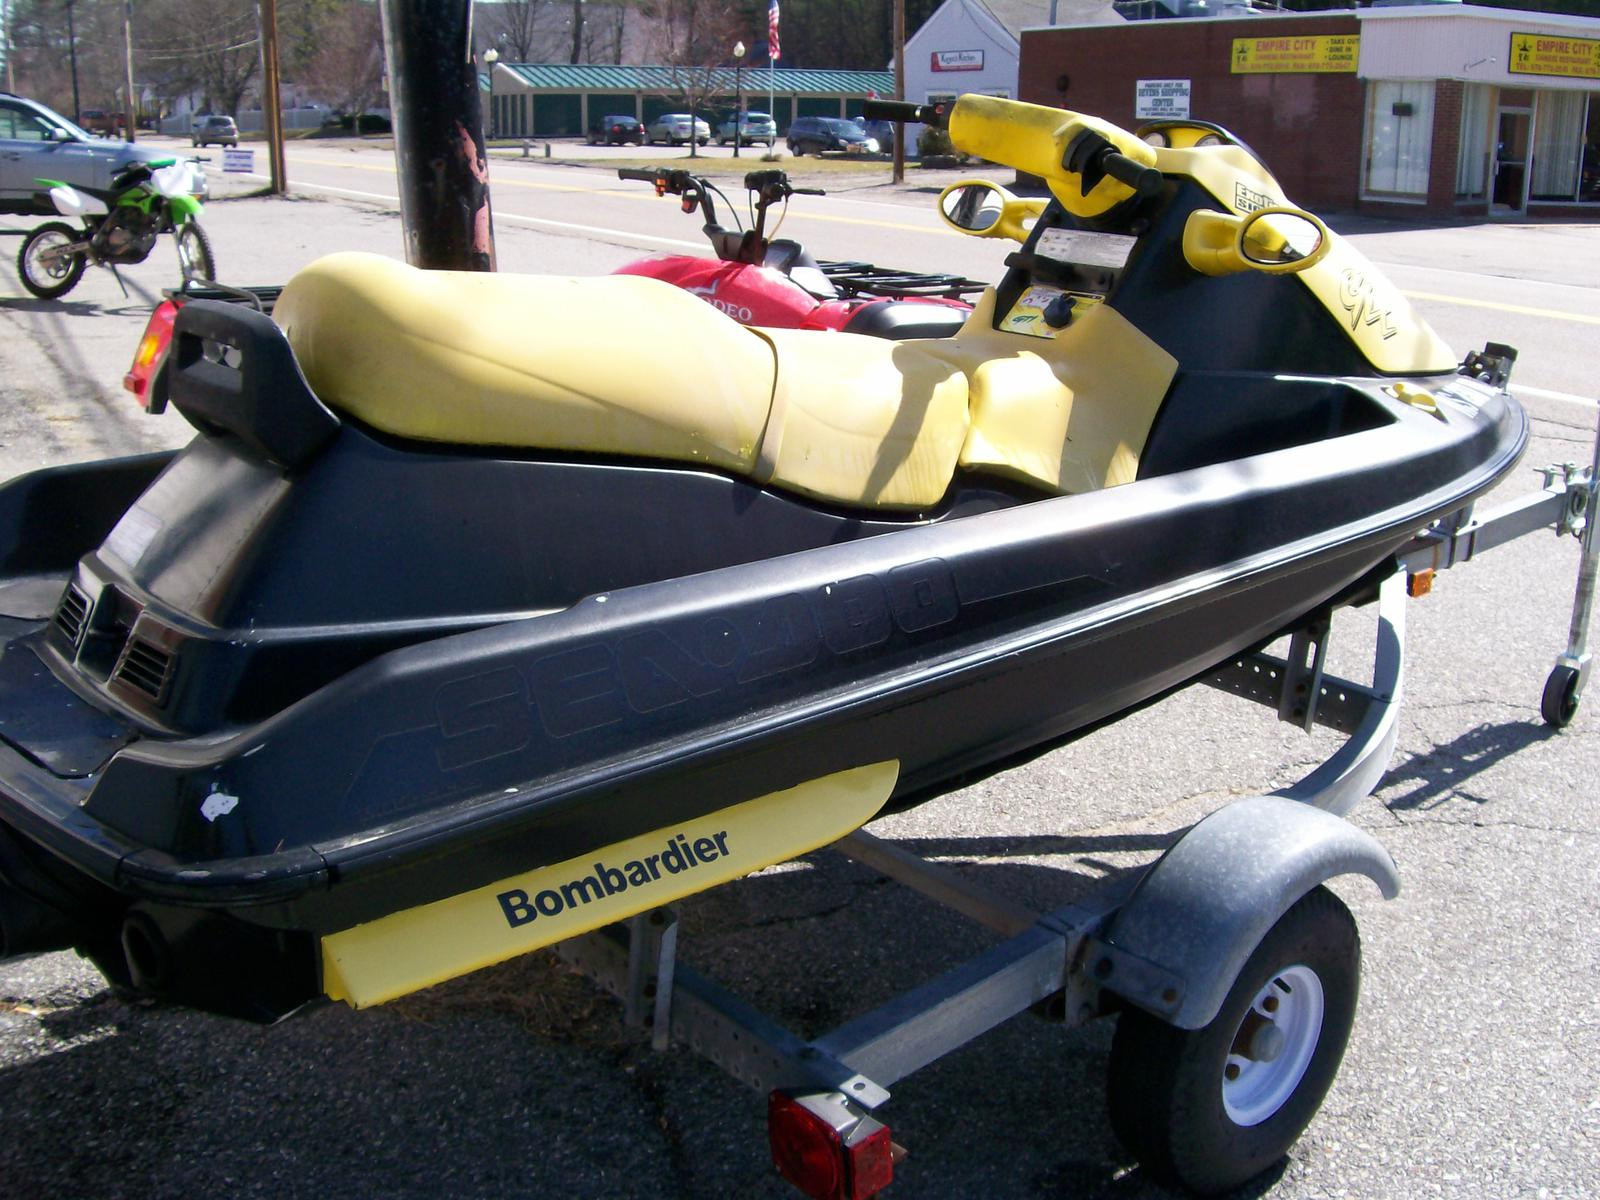 1996 Sea Doo GTX Jet Ski for sale in Ayer MA